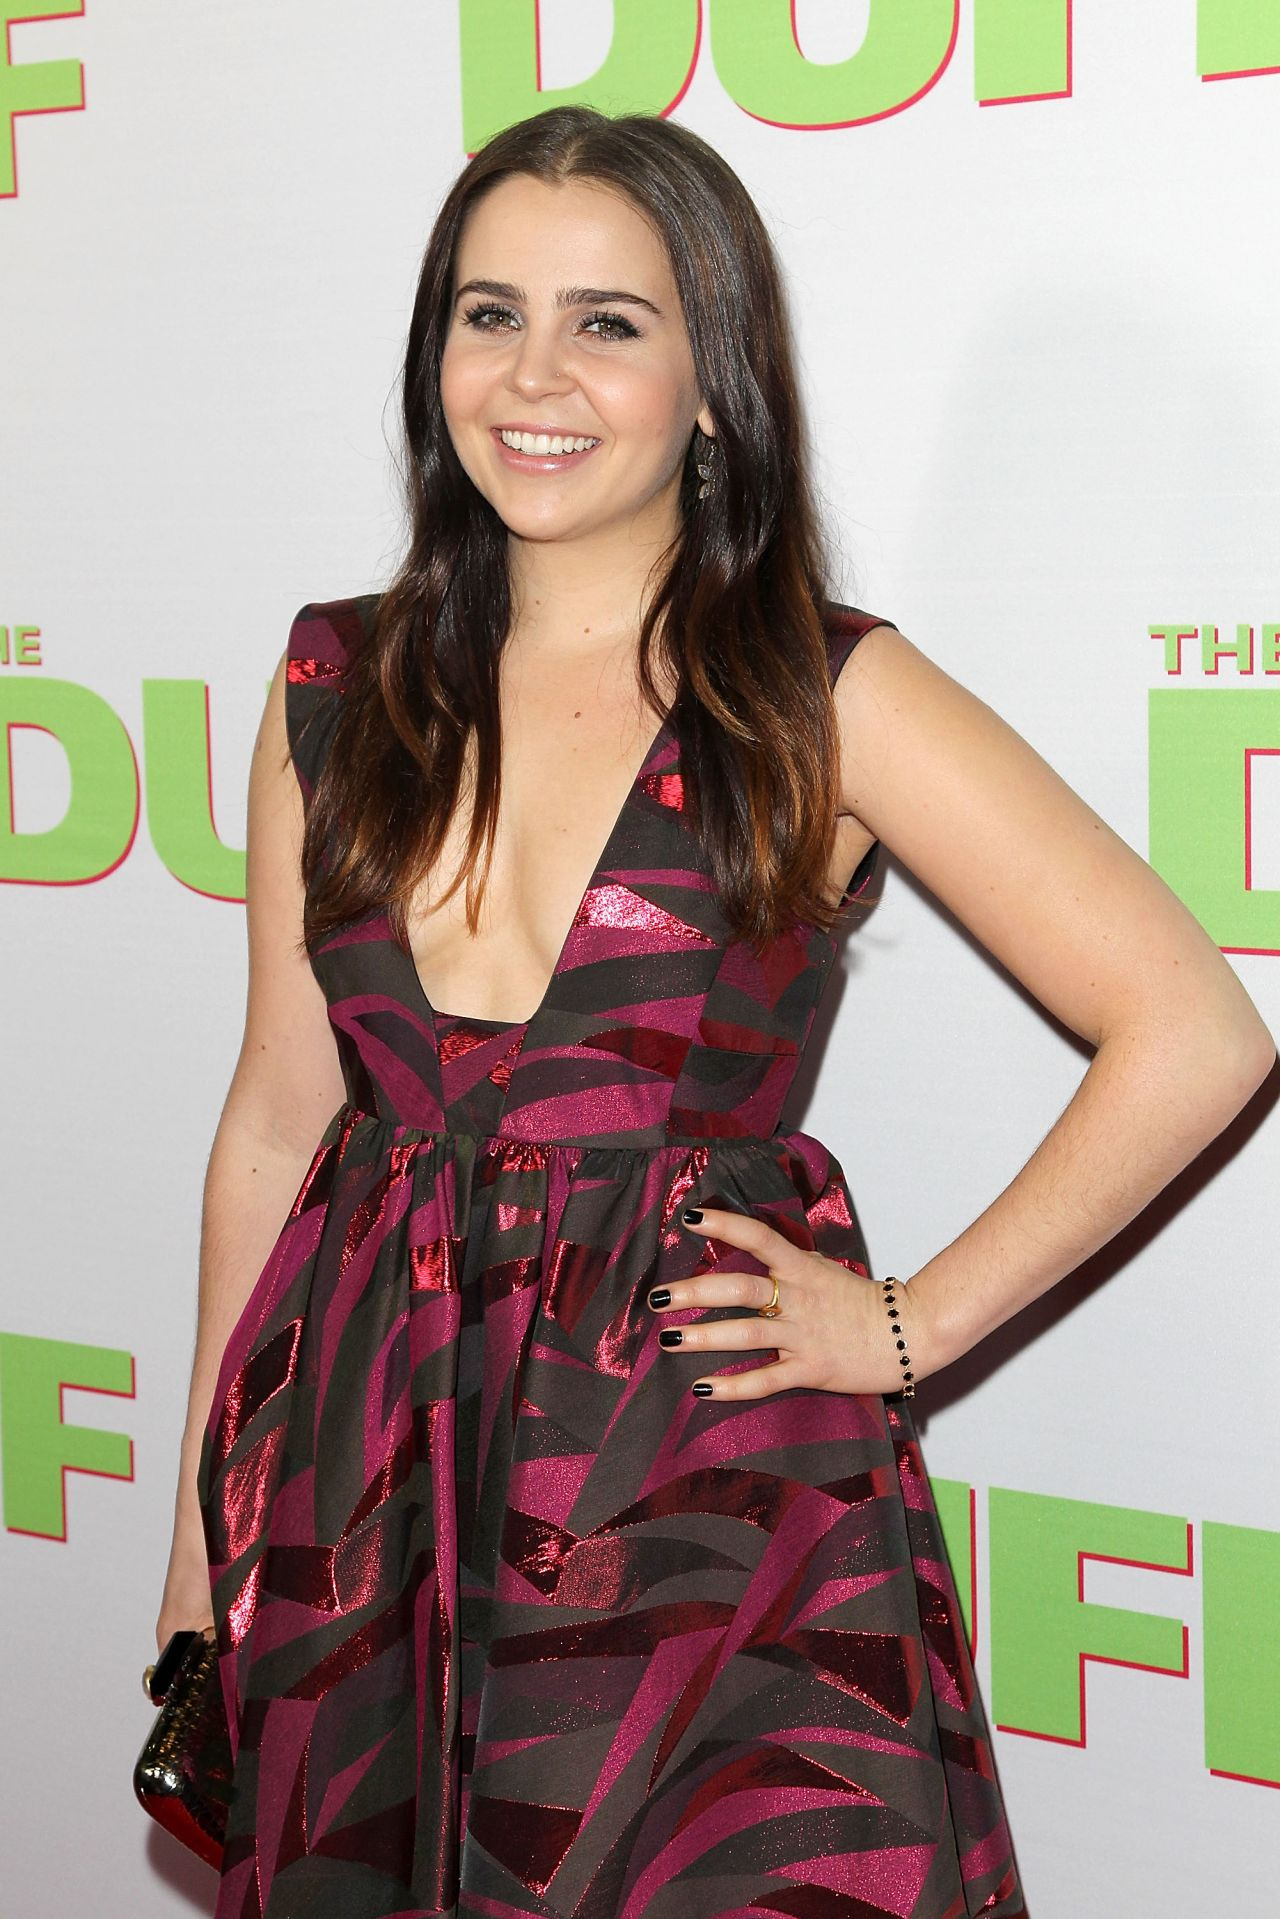 Mae Whitman The Duff Fan Screening In Los Angeles